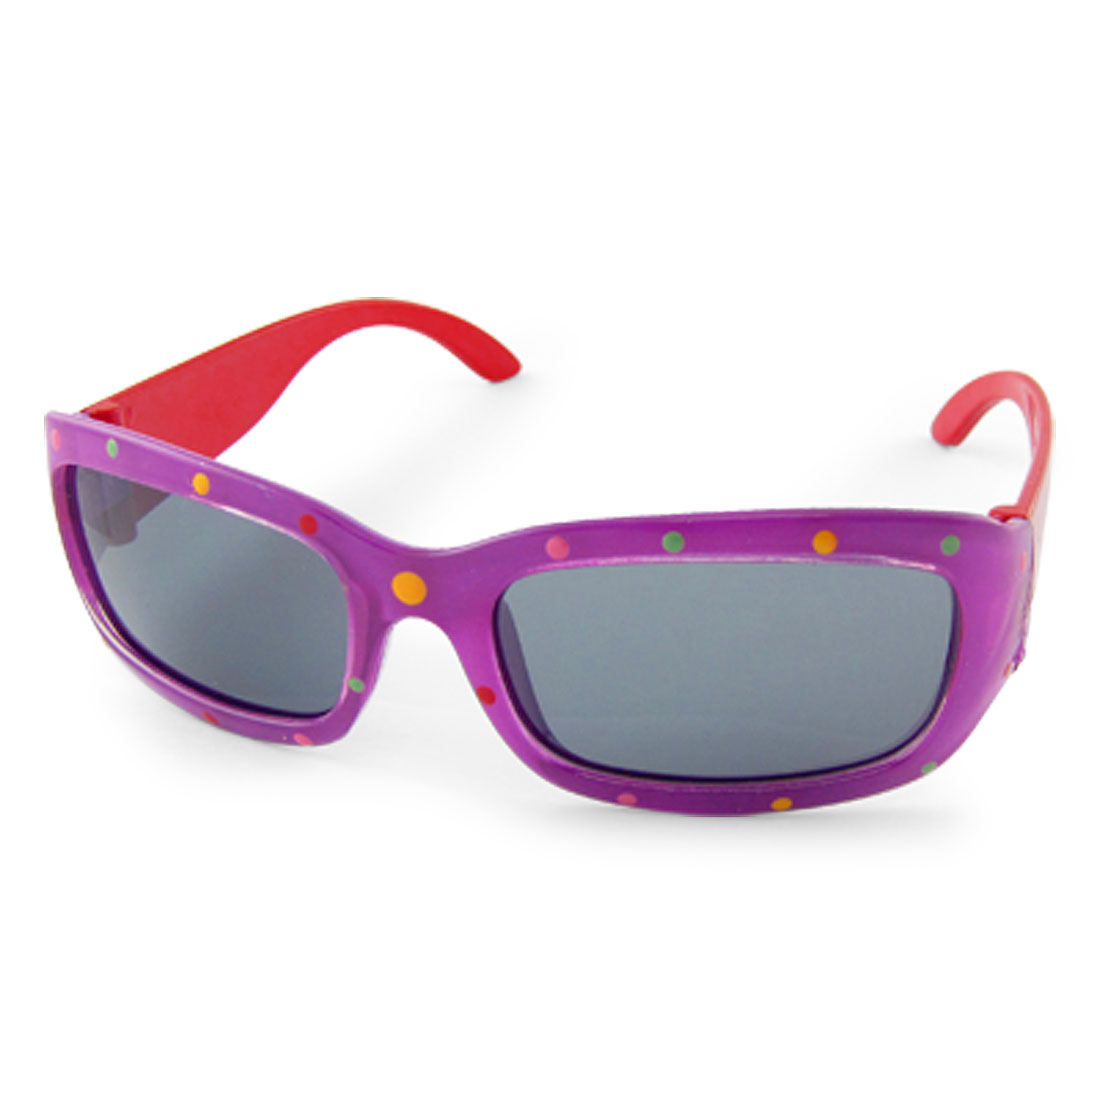 Kids Purple Frame Red Temples Rectangle Lens Sunglasses